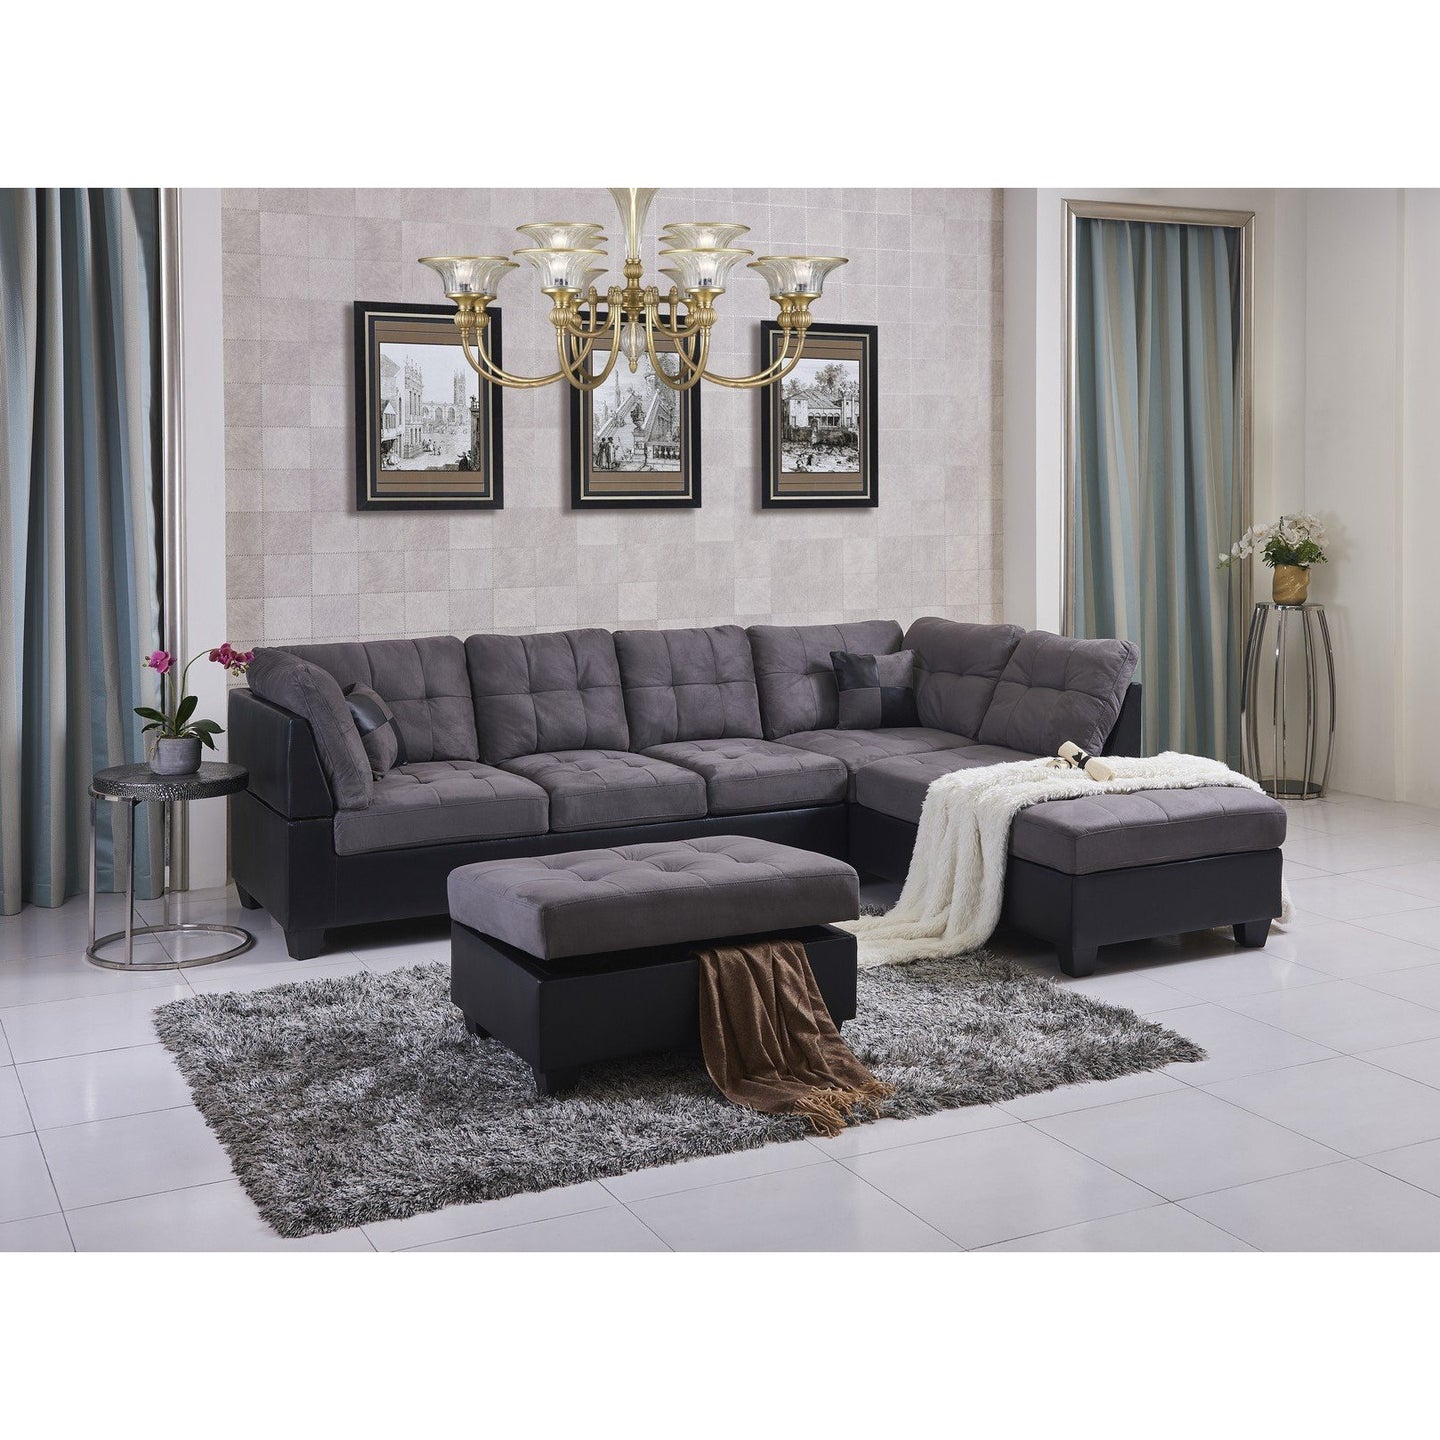 Eva Sectional Sofa with Ottoman